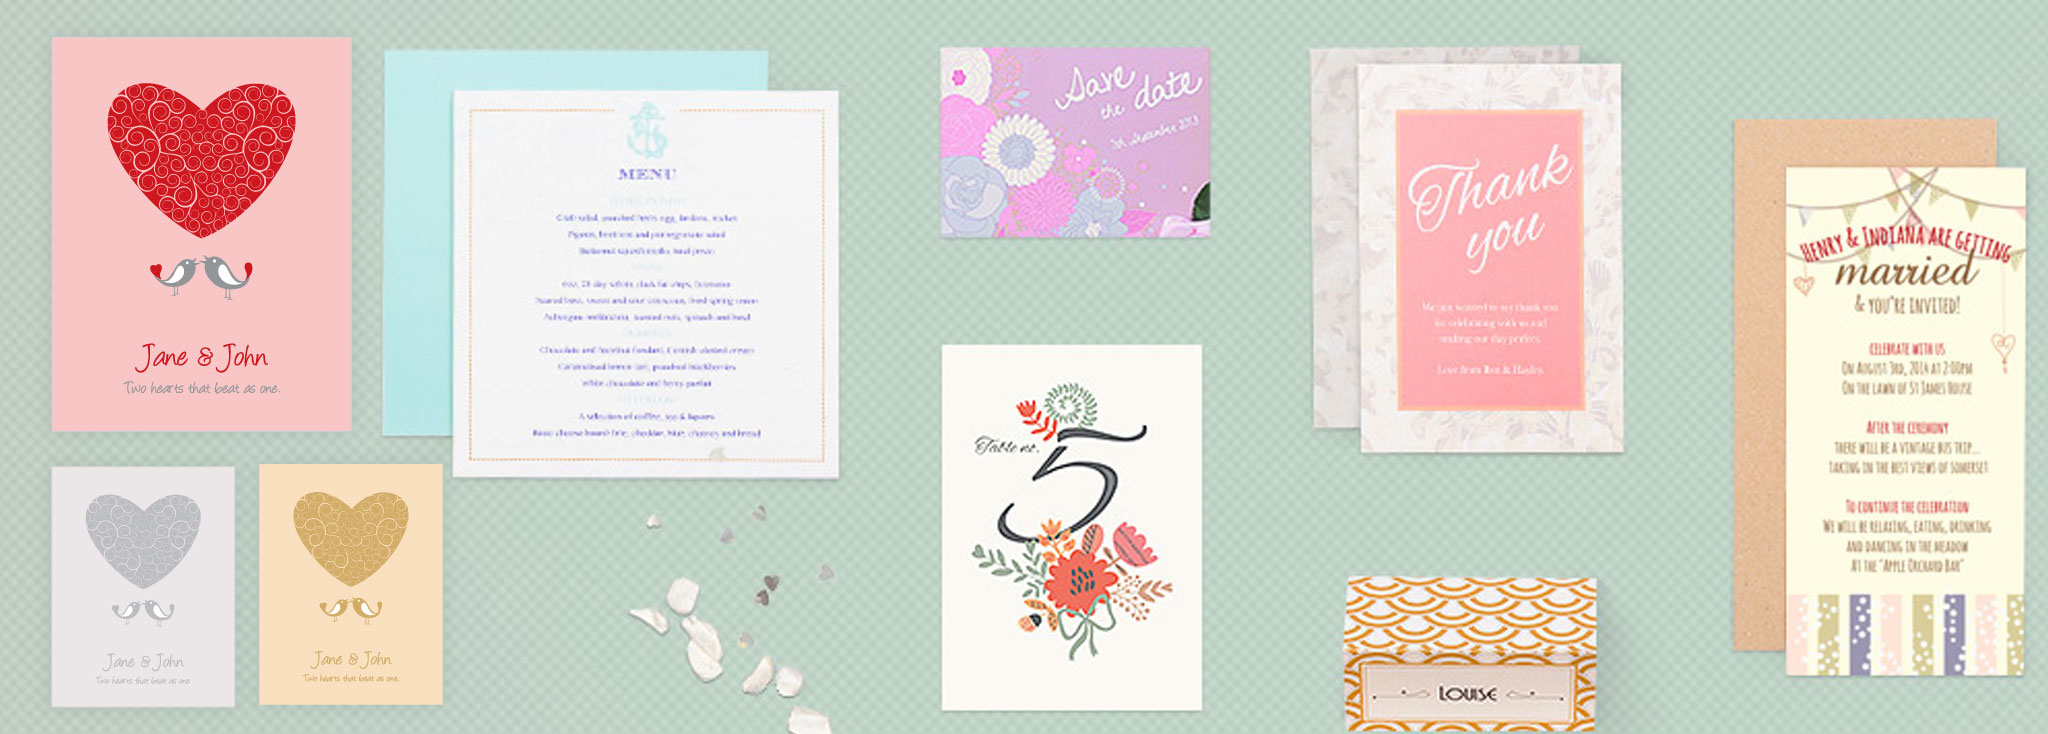 Banner-slider_wedding-card